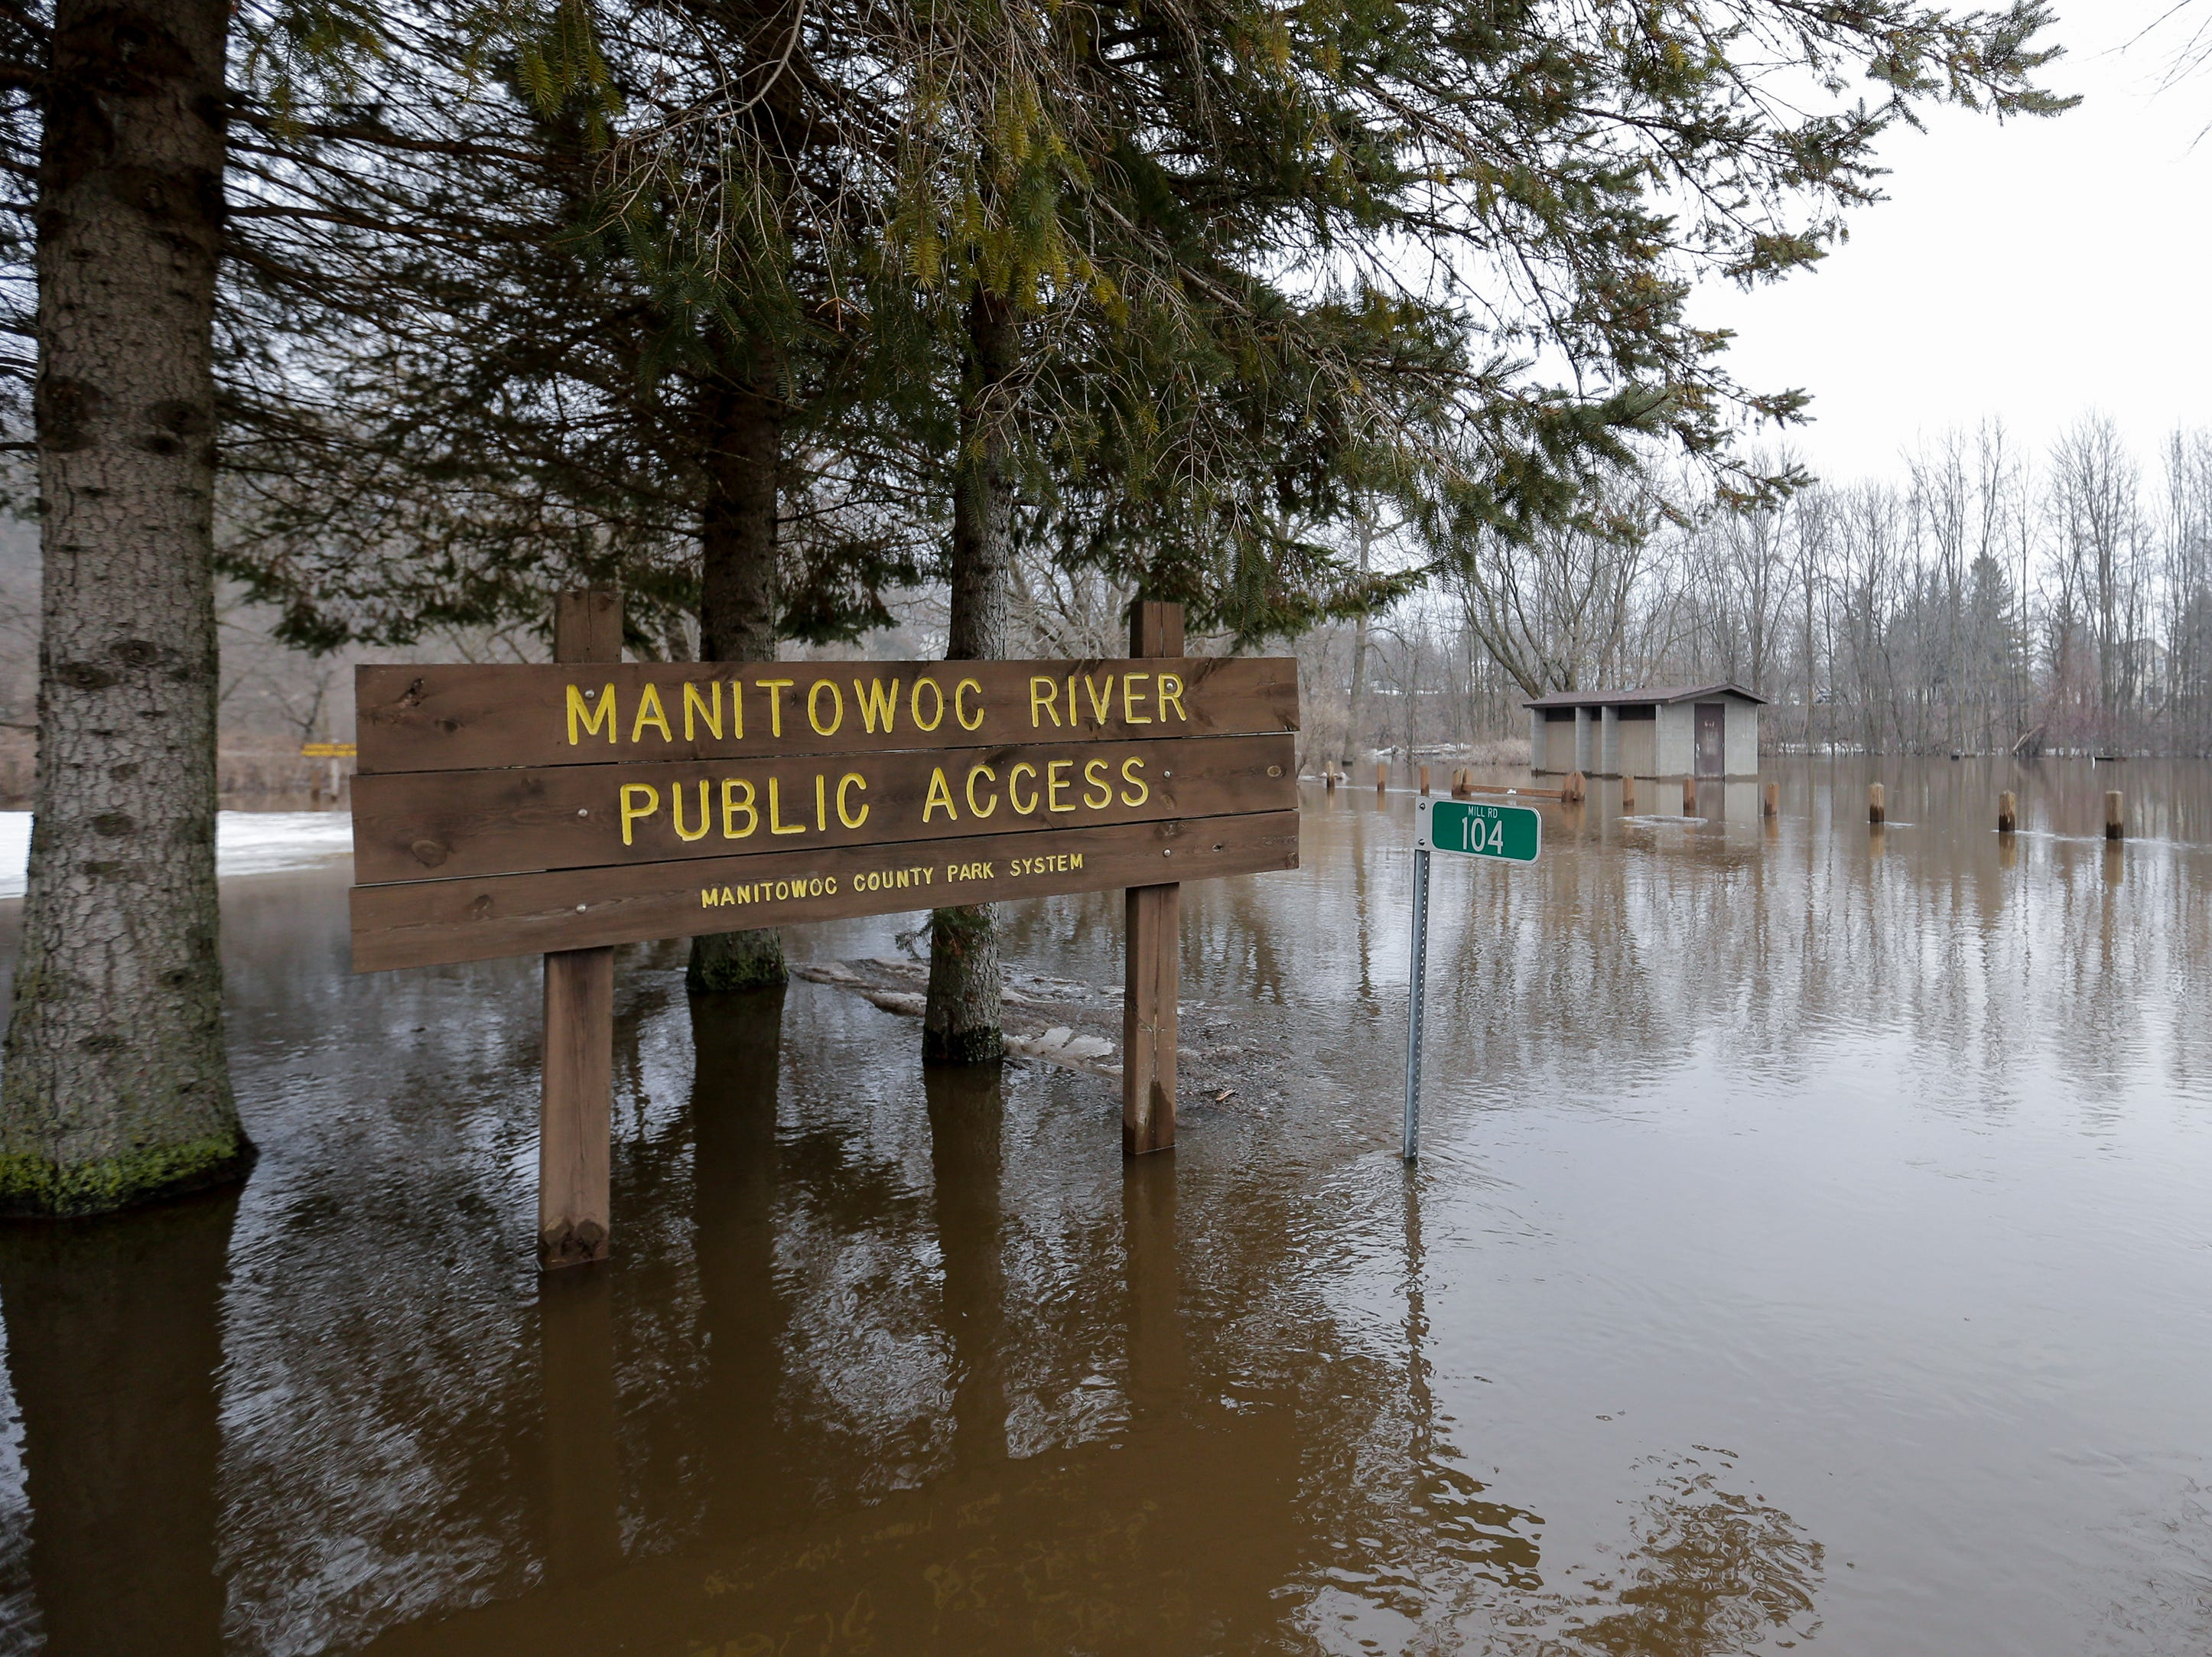 An ice jam on the Manitowoc River causes severe flooding near Mill Road Wednesday, March 20, 2019, in Manitowoc, Wis. Joshua Clark/USA TODAY NETWORK-Wisconsin